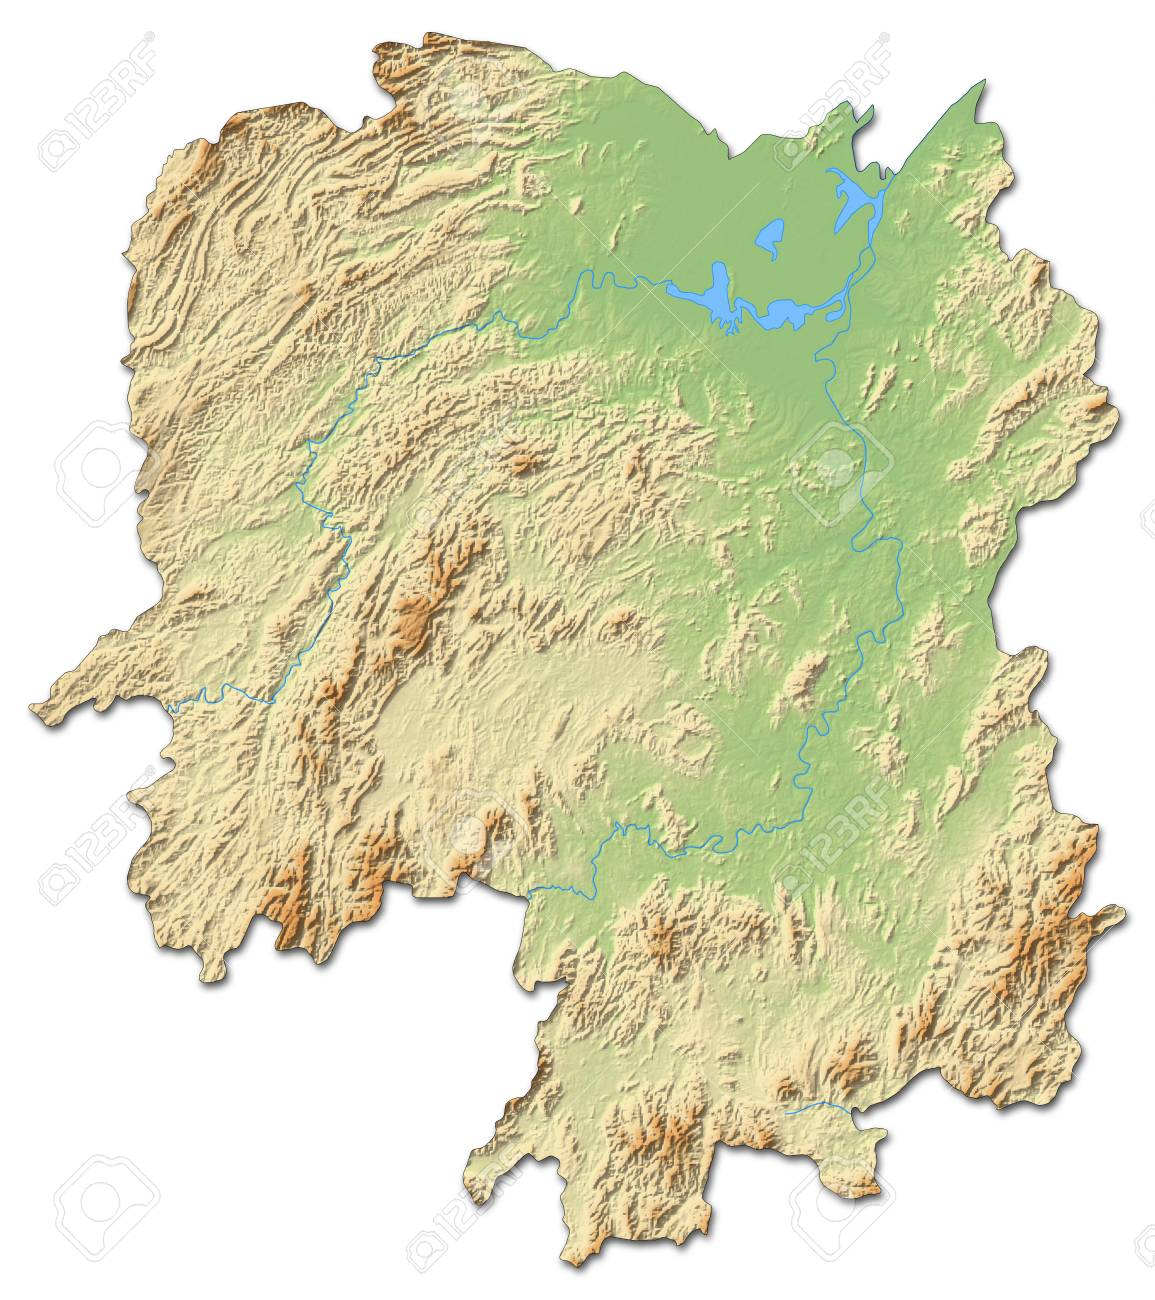 Hunan Province China Map.Relief Map Of Hunan A Province Of China With Shaded Relief Stock